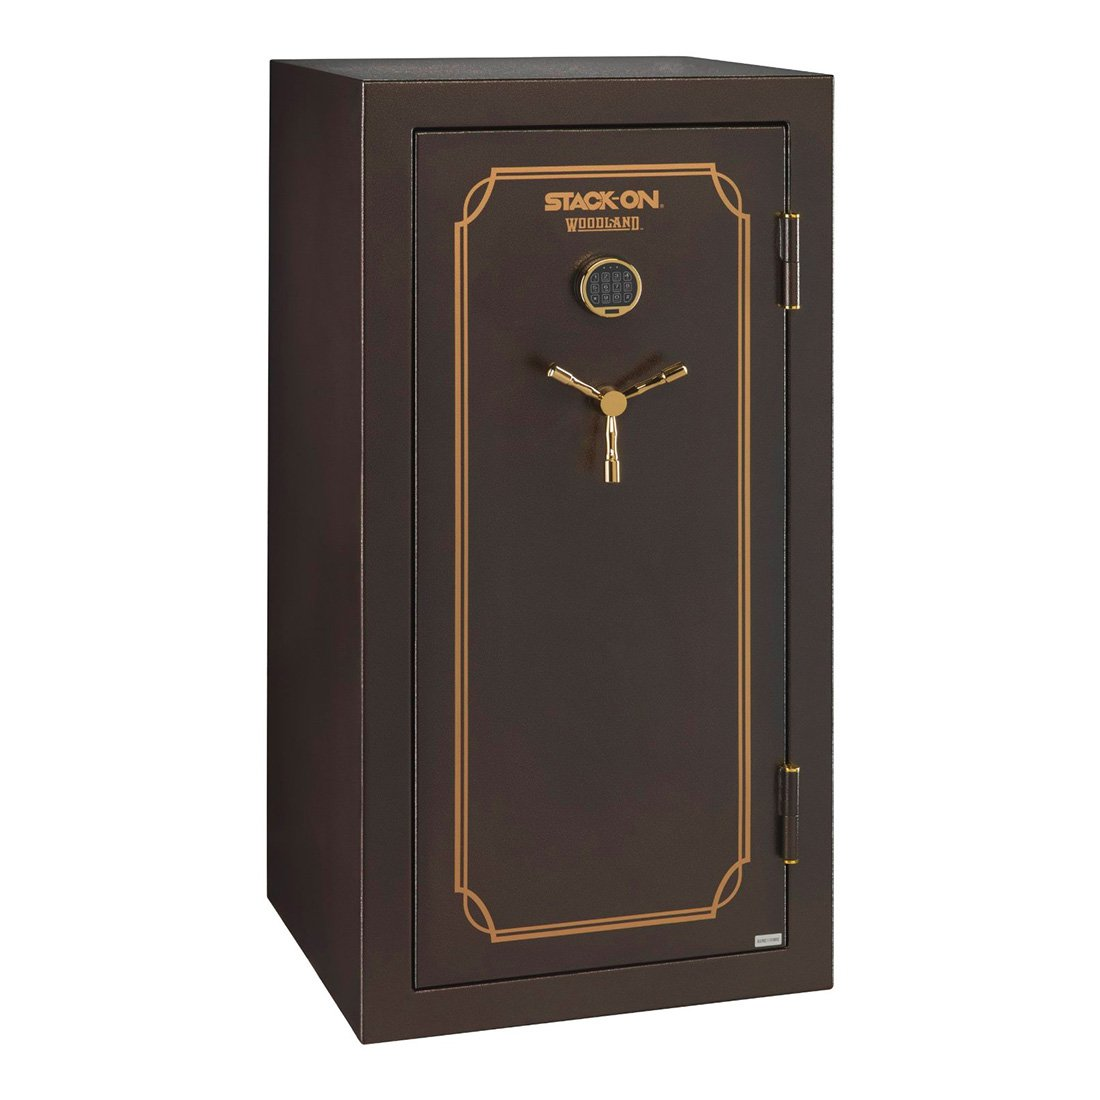 Stack On W 40 Bh E S Woodland 40 Gun Fire Resistant Safe